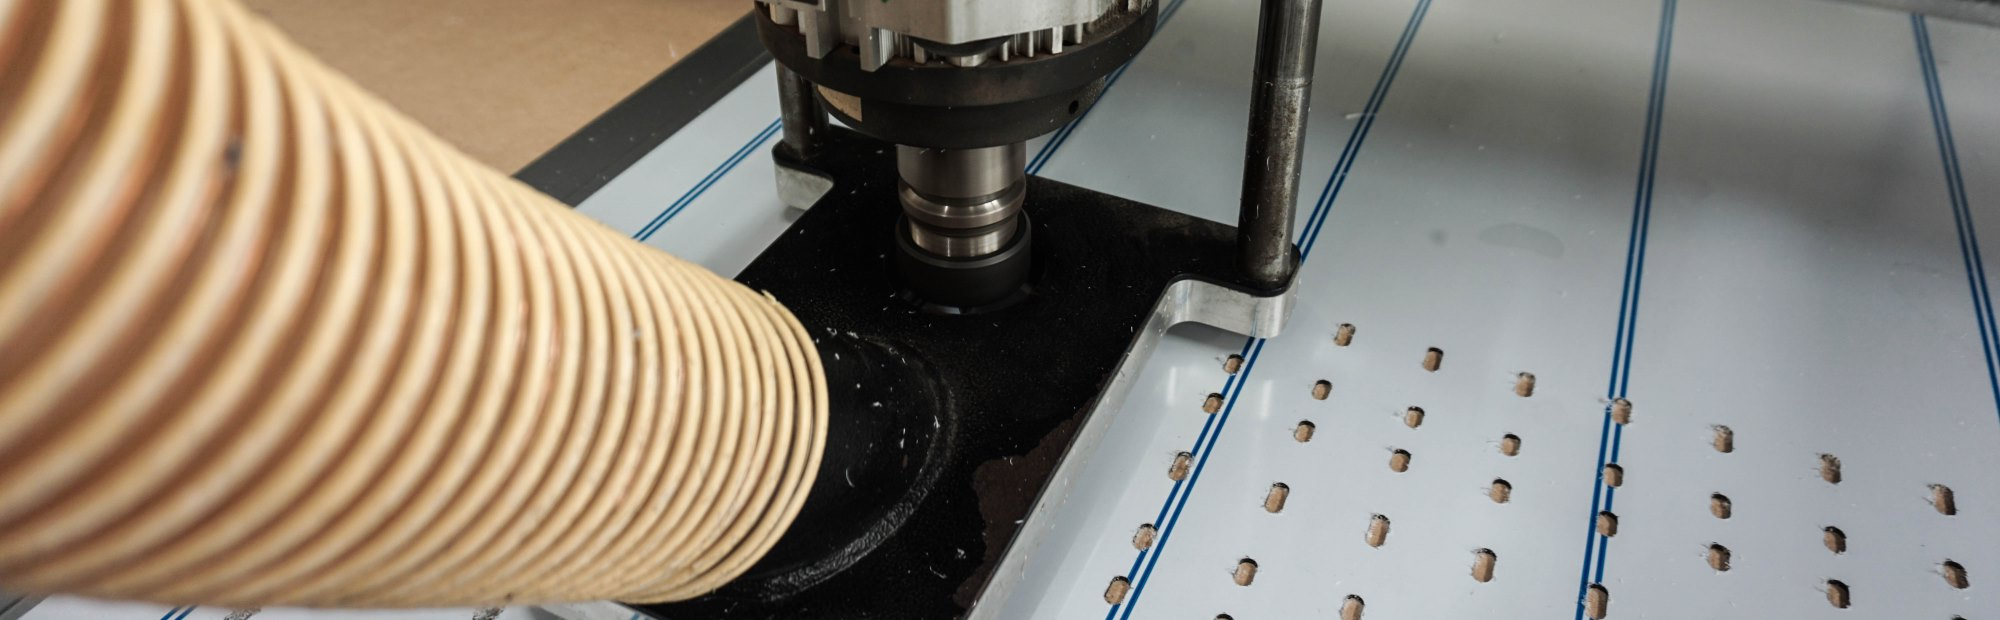 cnc-milling-machine-norfolk